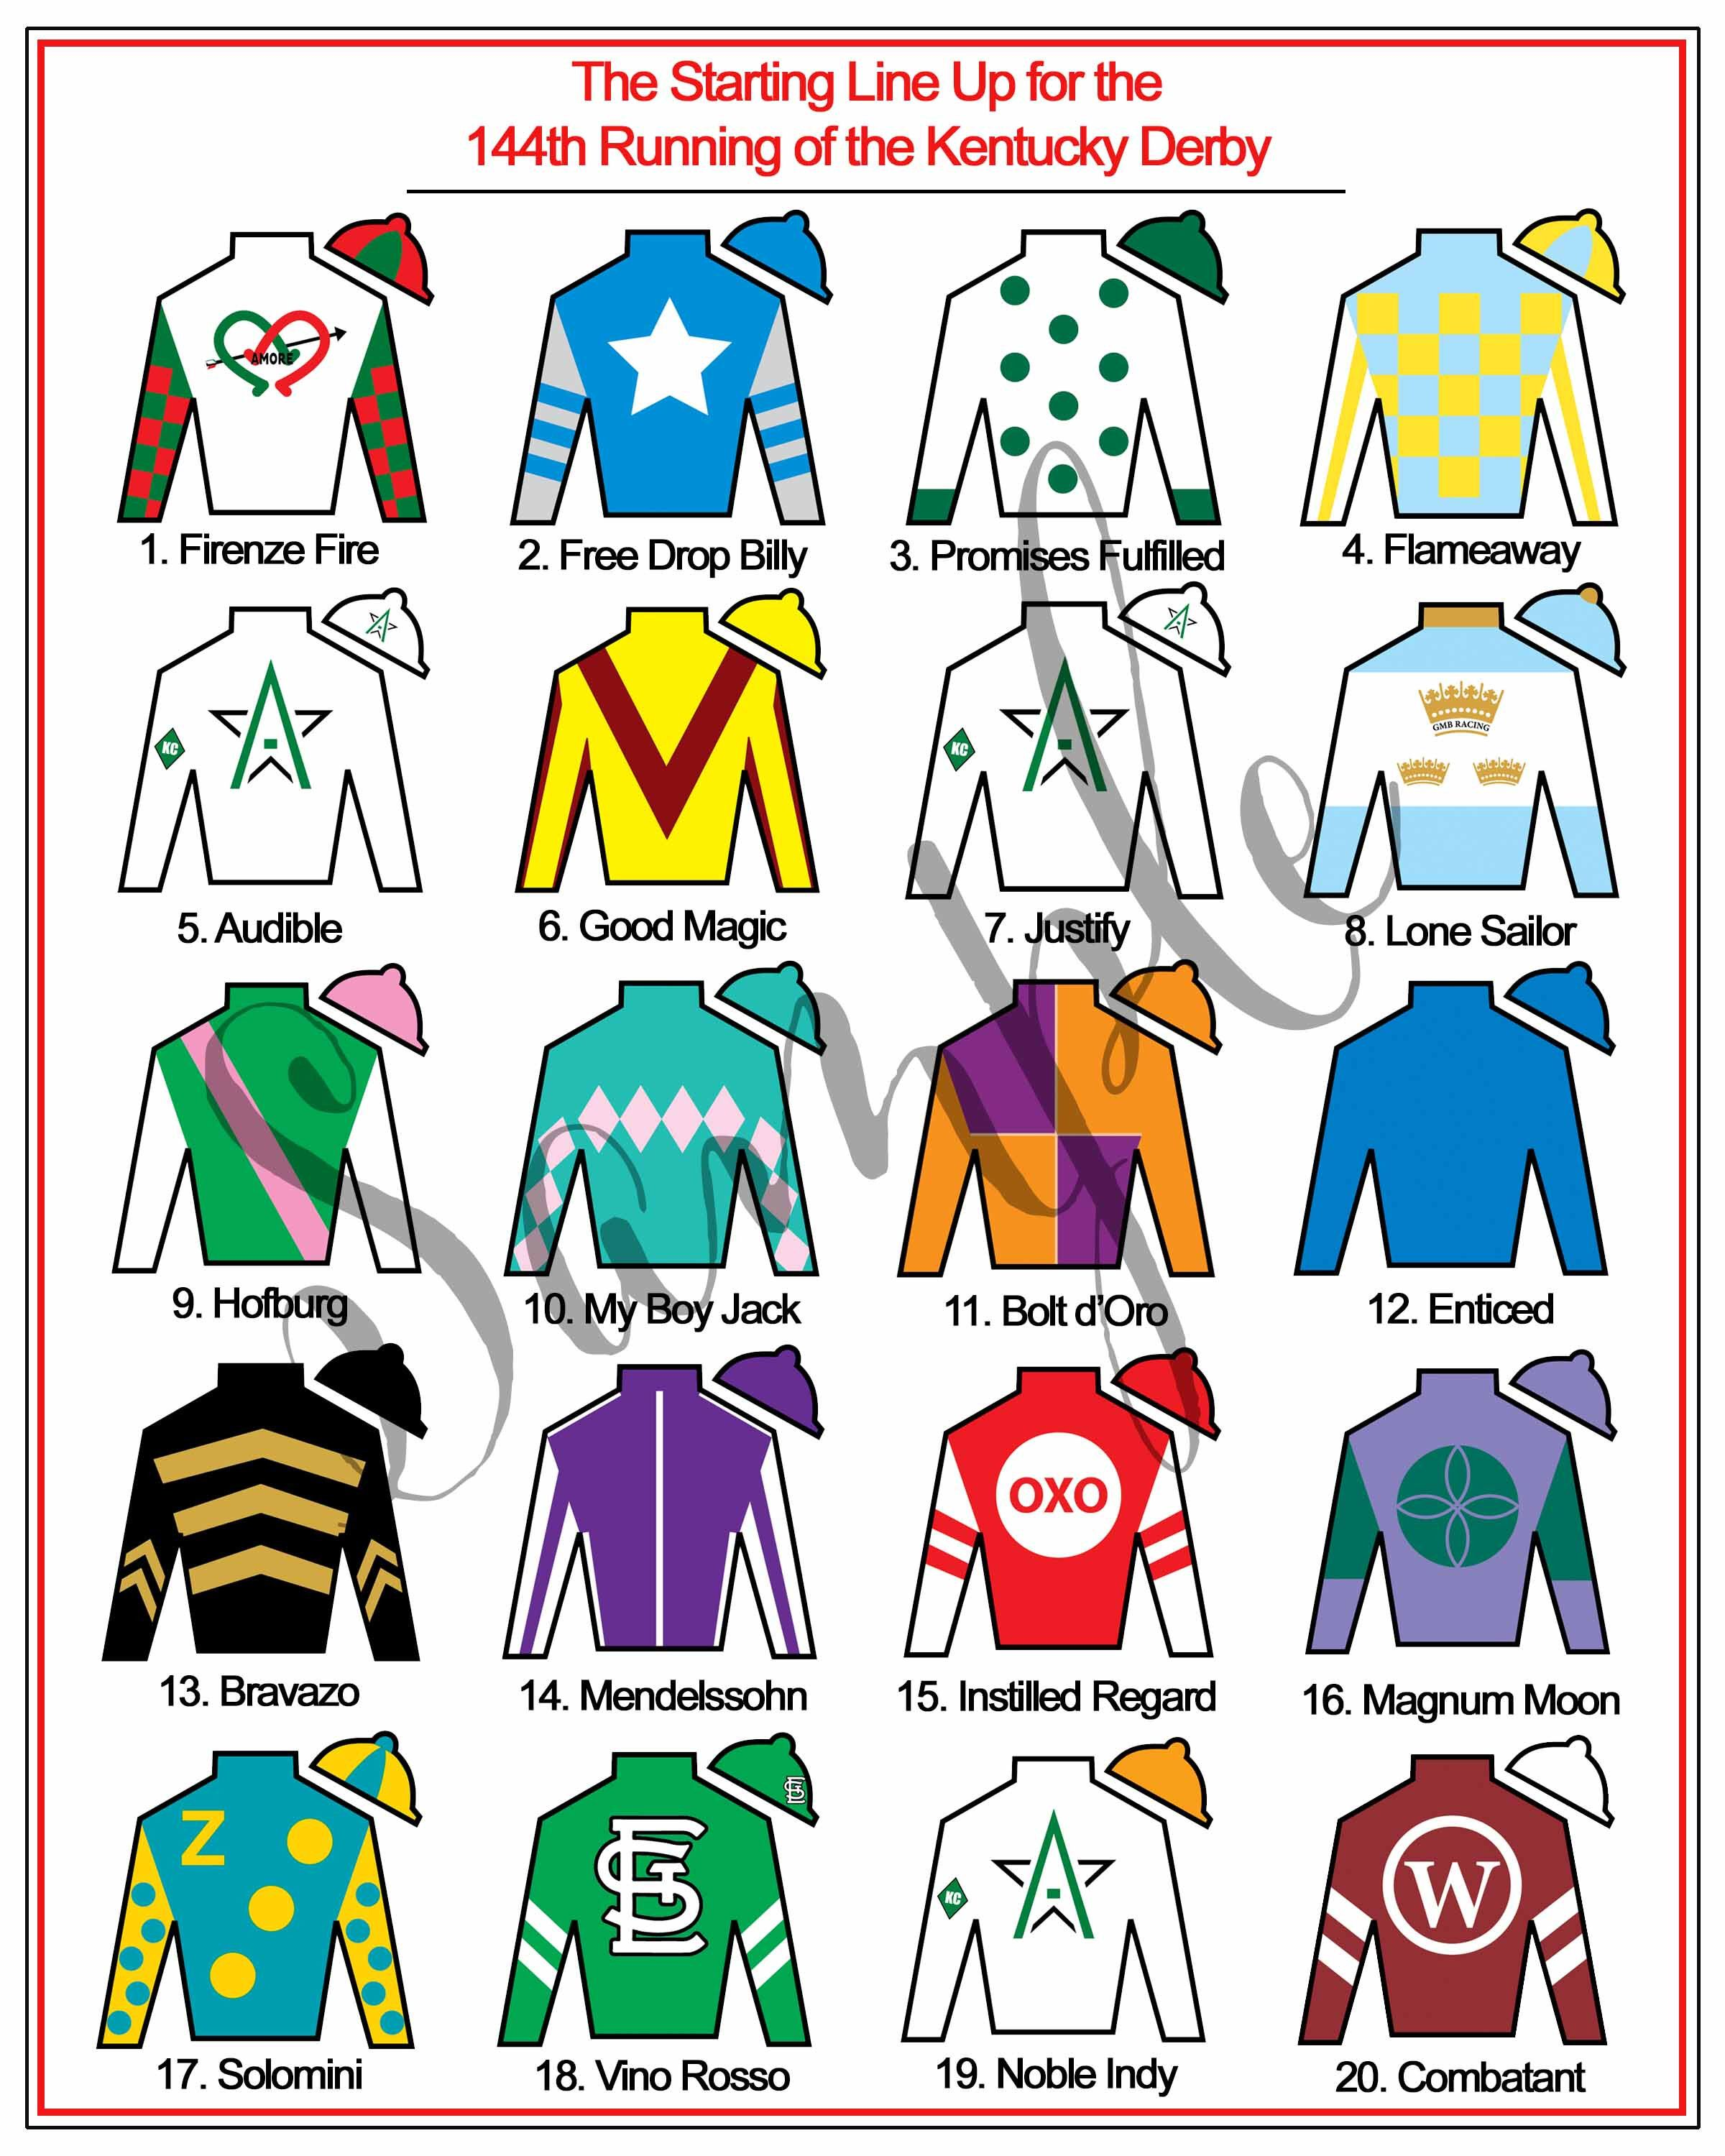 This is a photo of Kentucky Derby Post Positions Printable intended for jockey